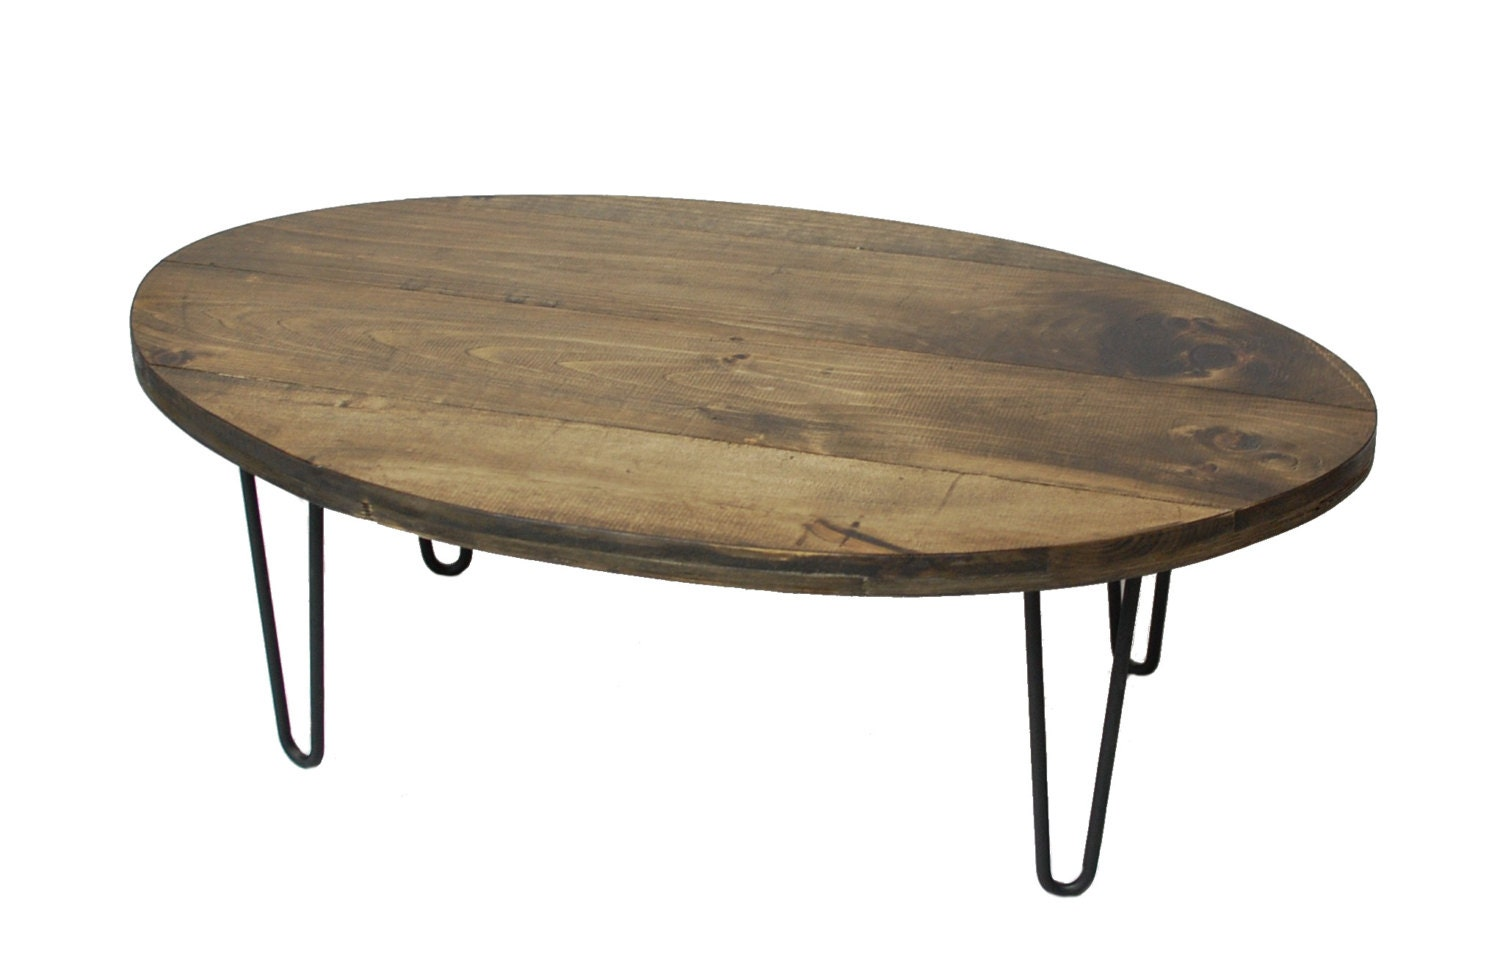 Oval industrial coffee table reclaimed wood furniture round etsy Wood oval coffee table